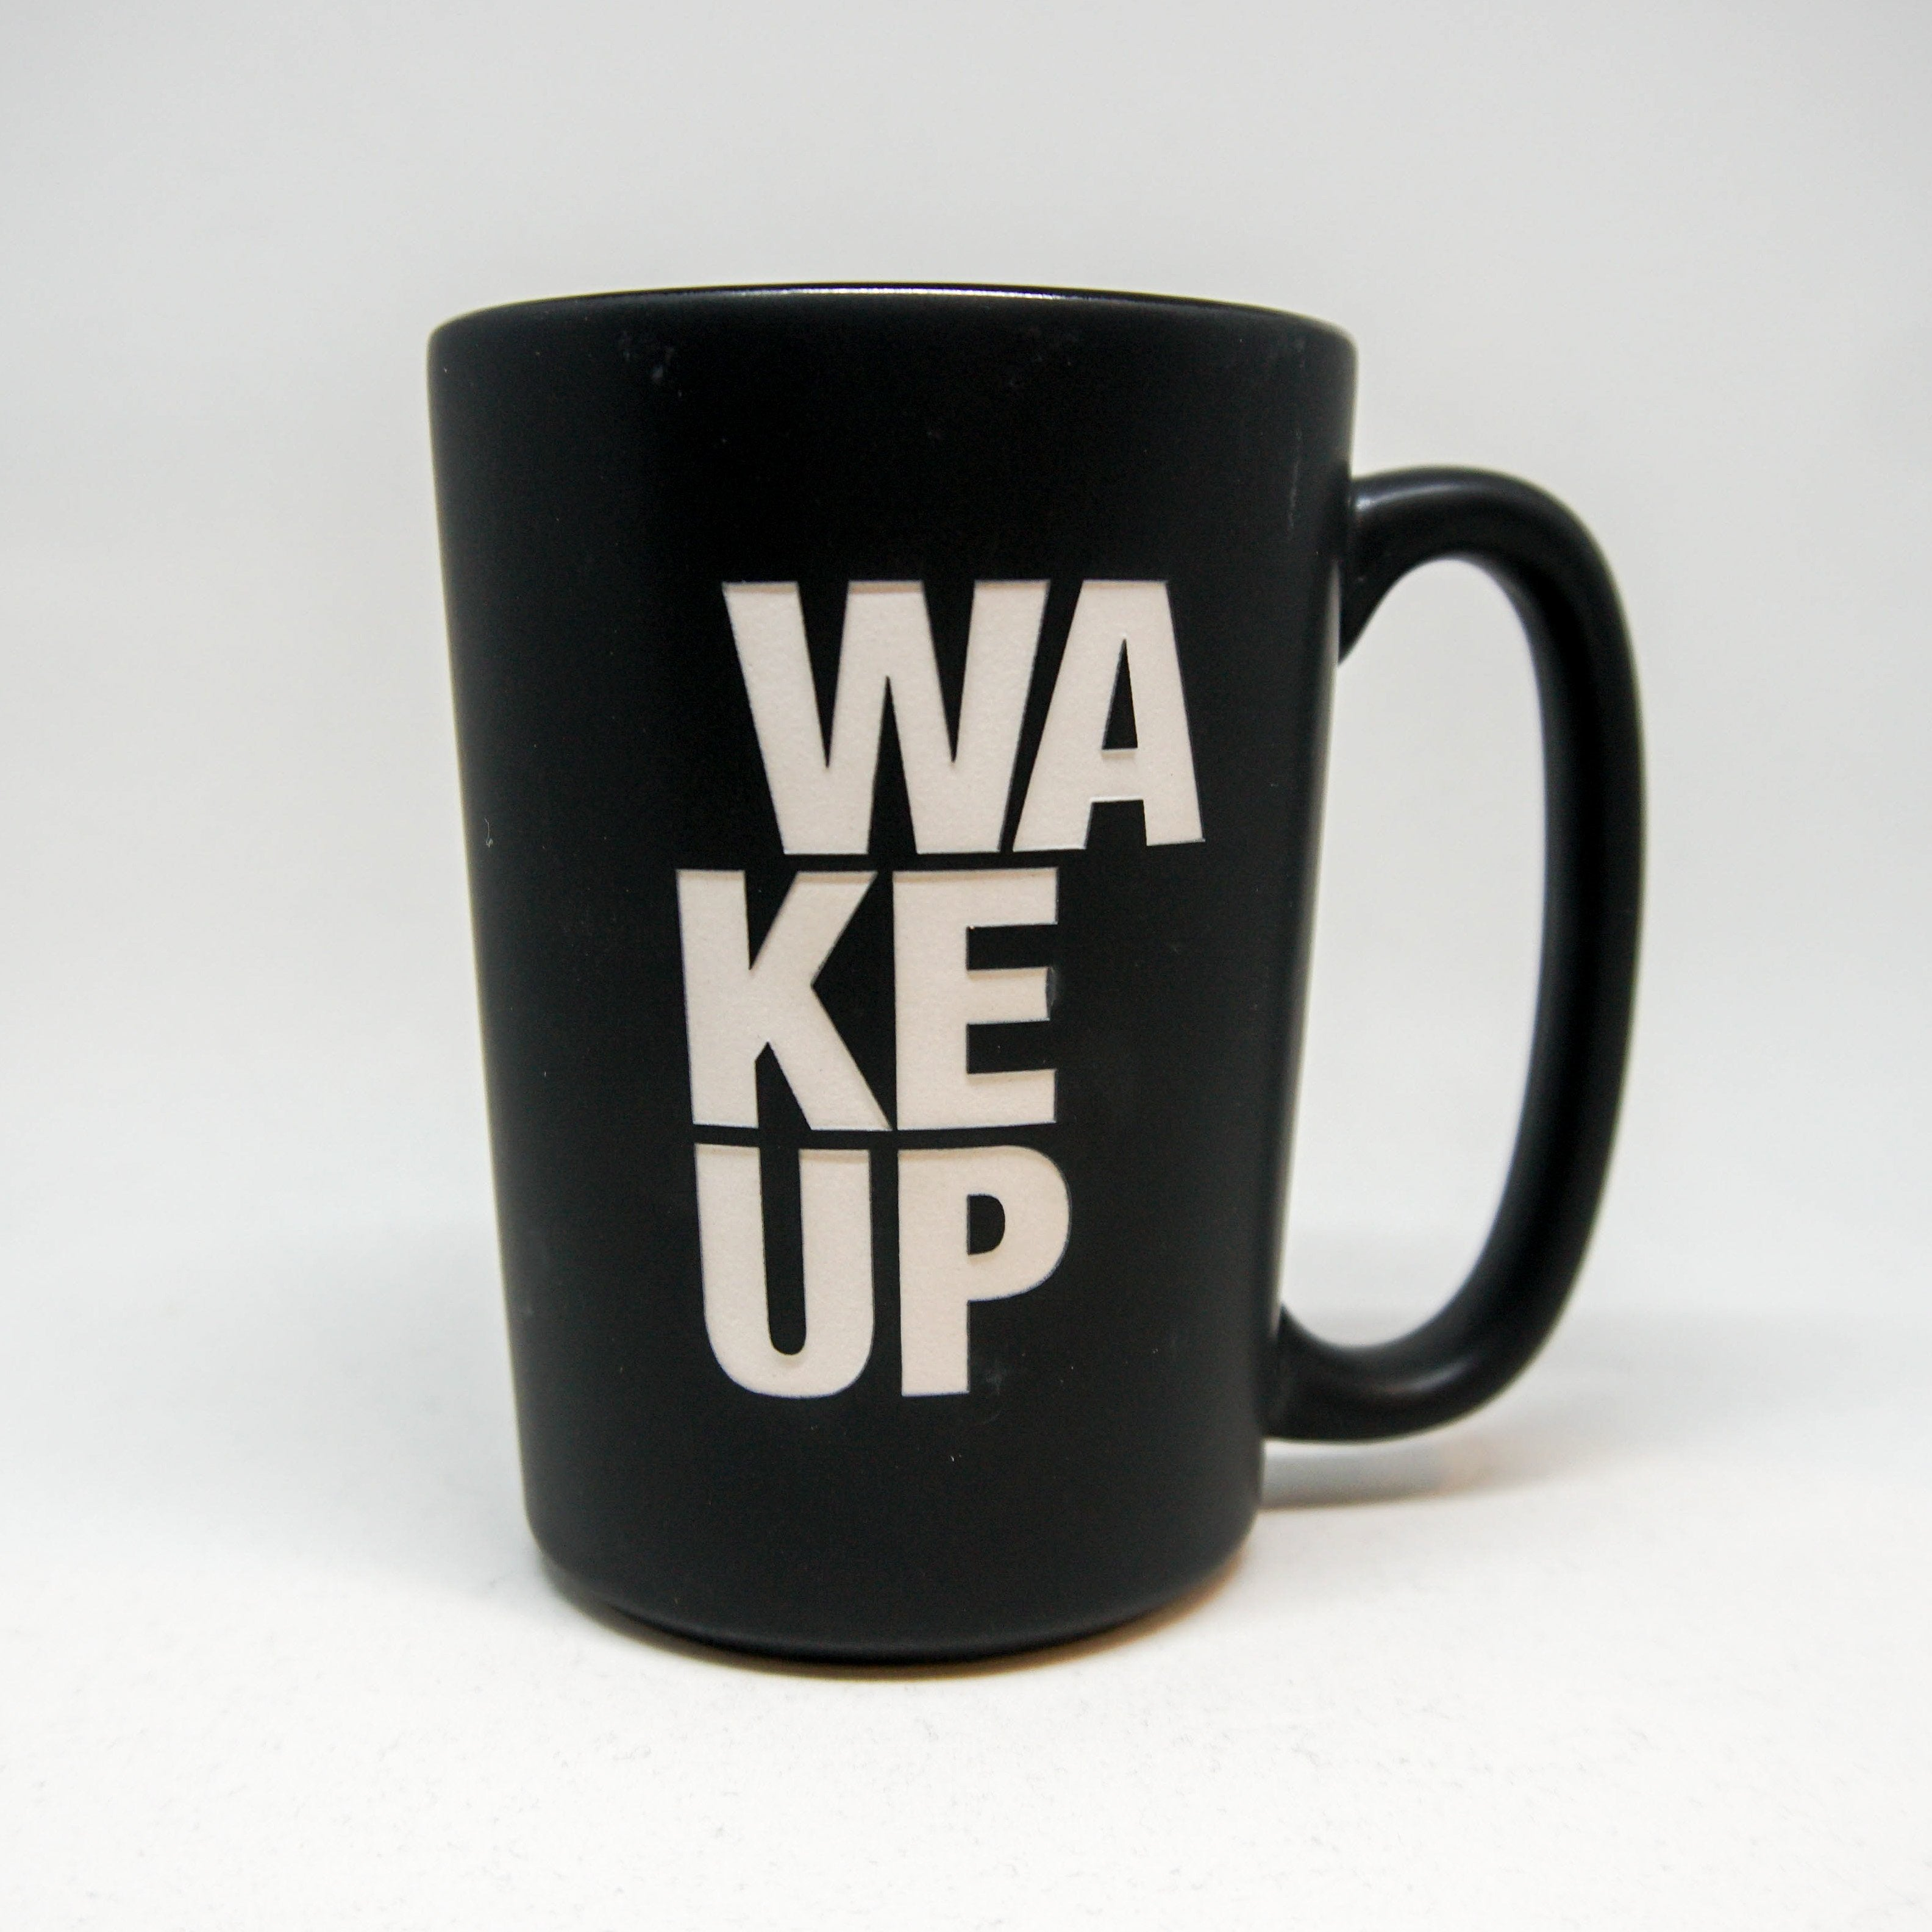 Coffee Mug - The WAKEUP Company